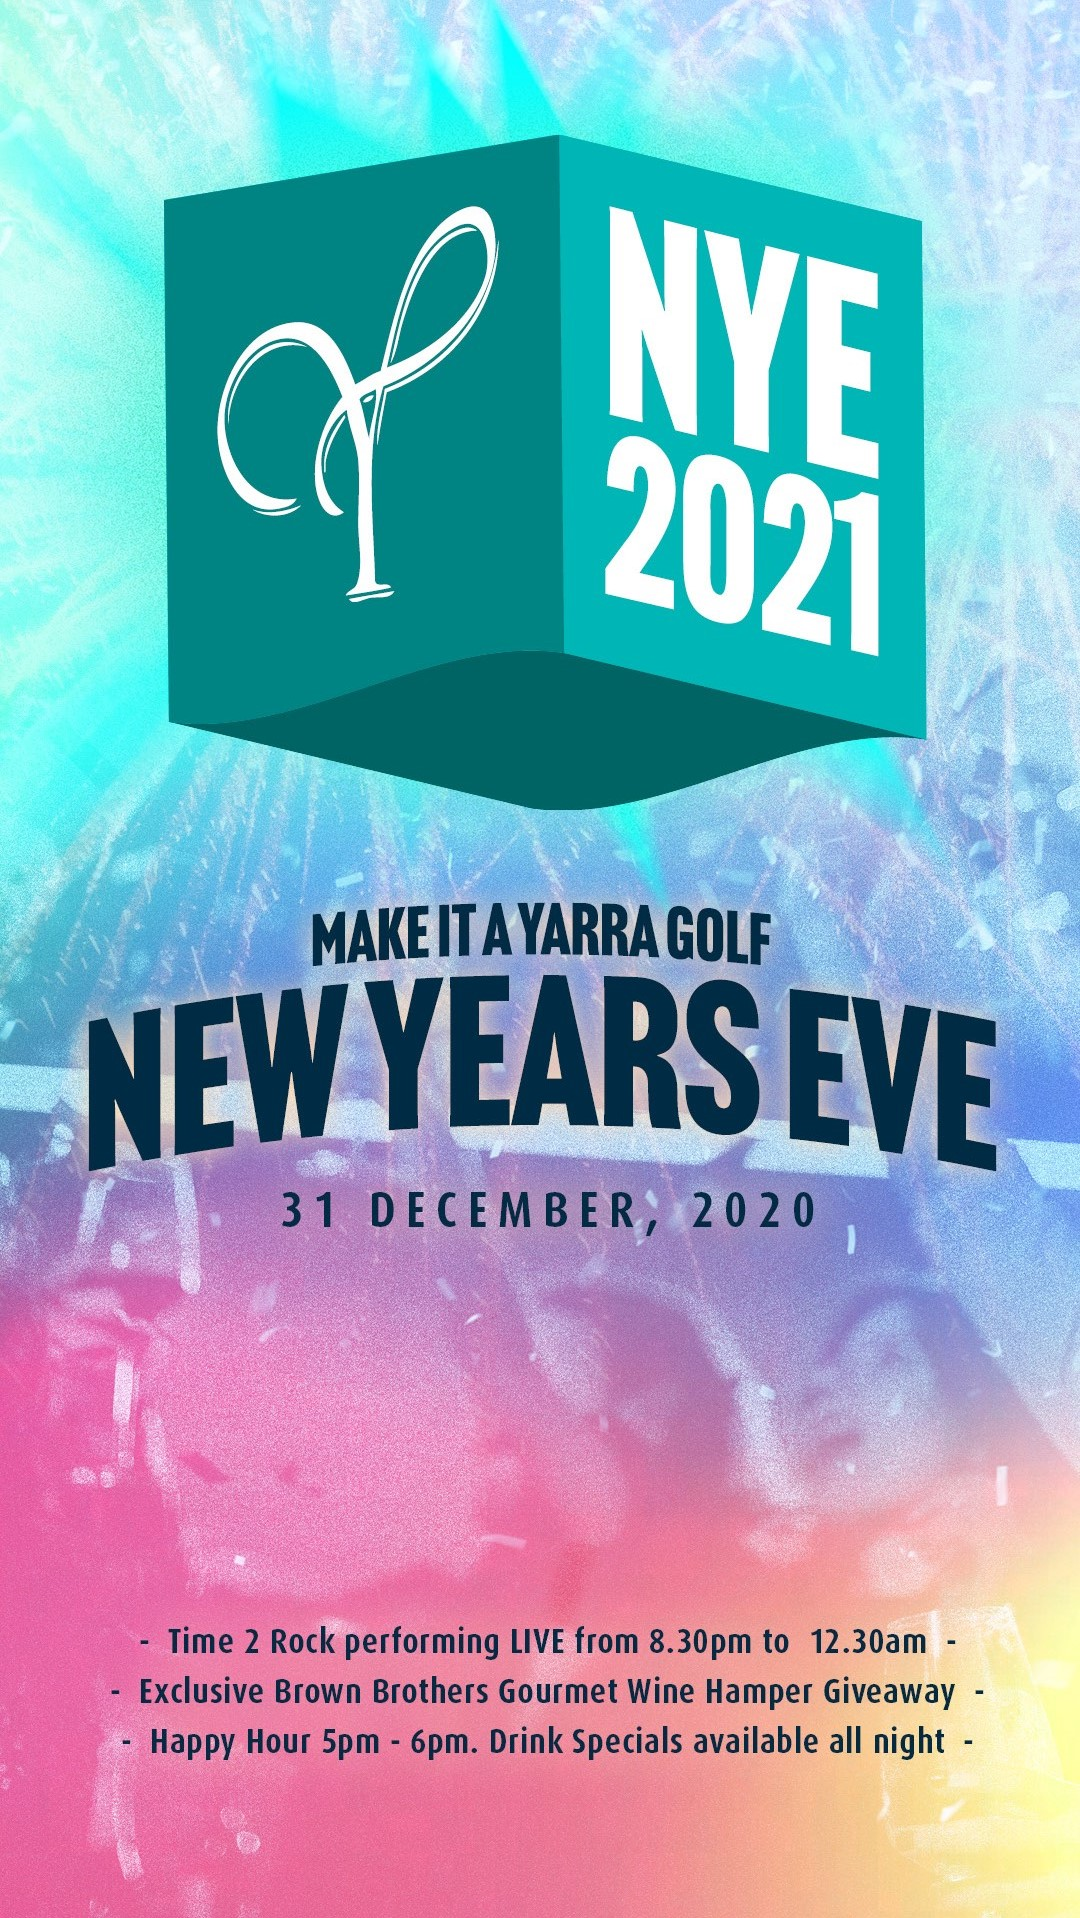 Bring in the new year at Yarra Golf!